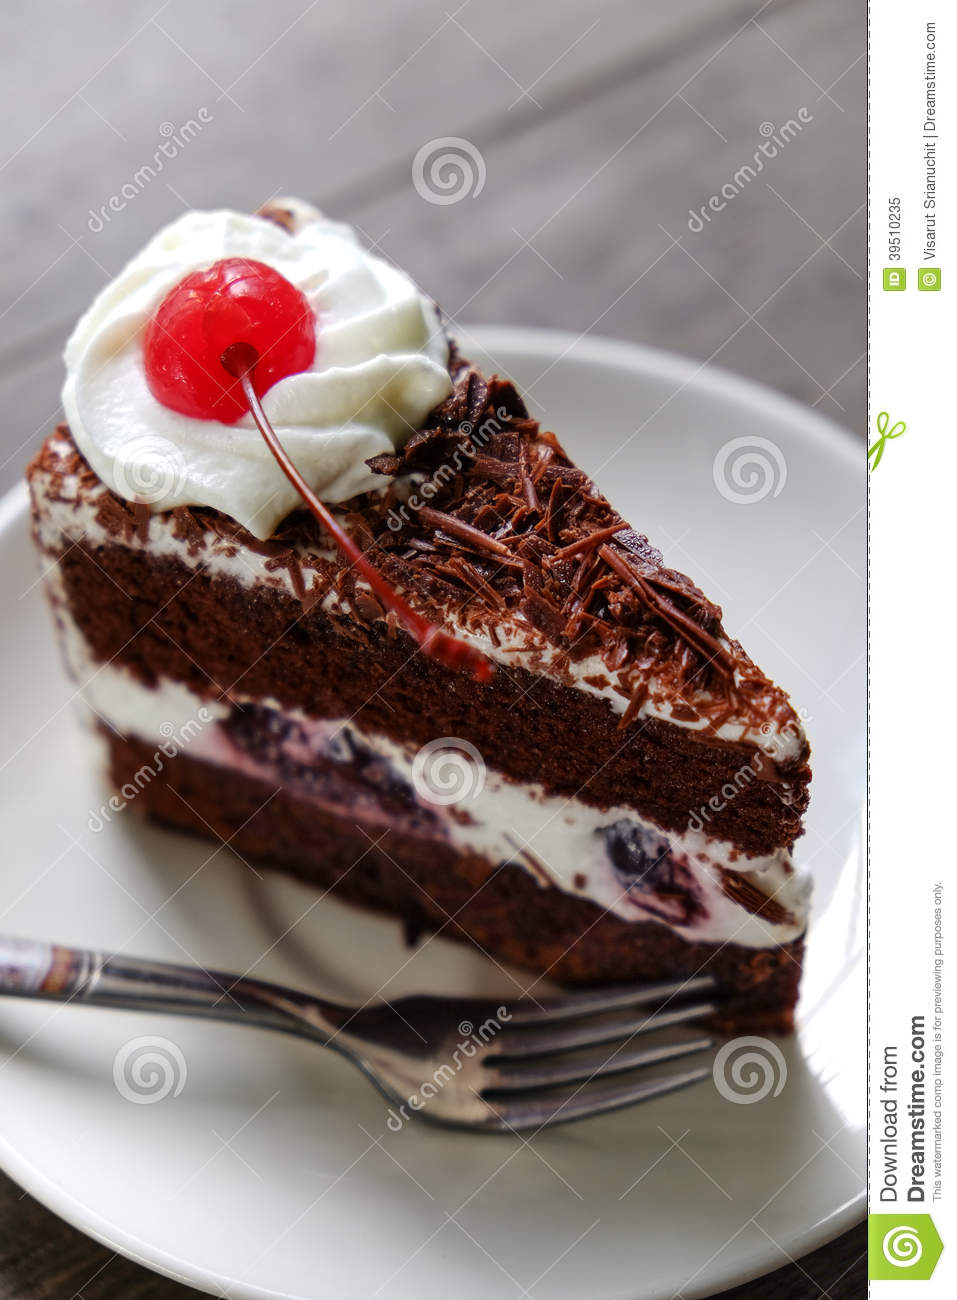 Dark chocolate cake on wood background